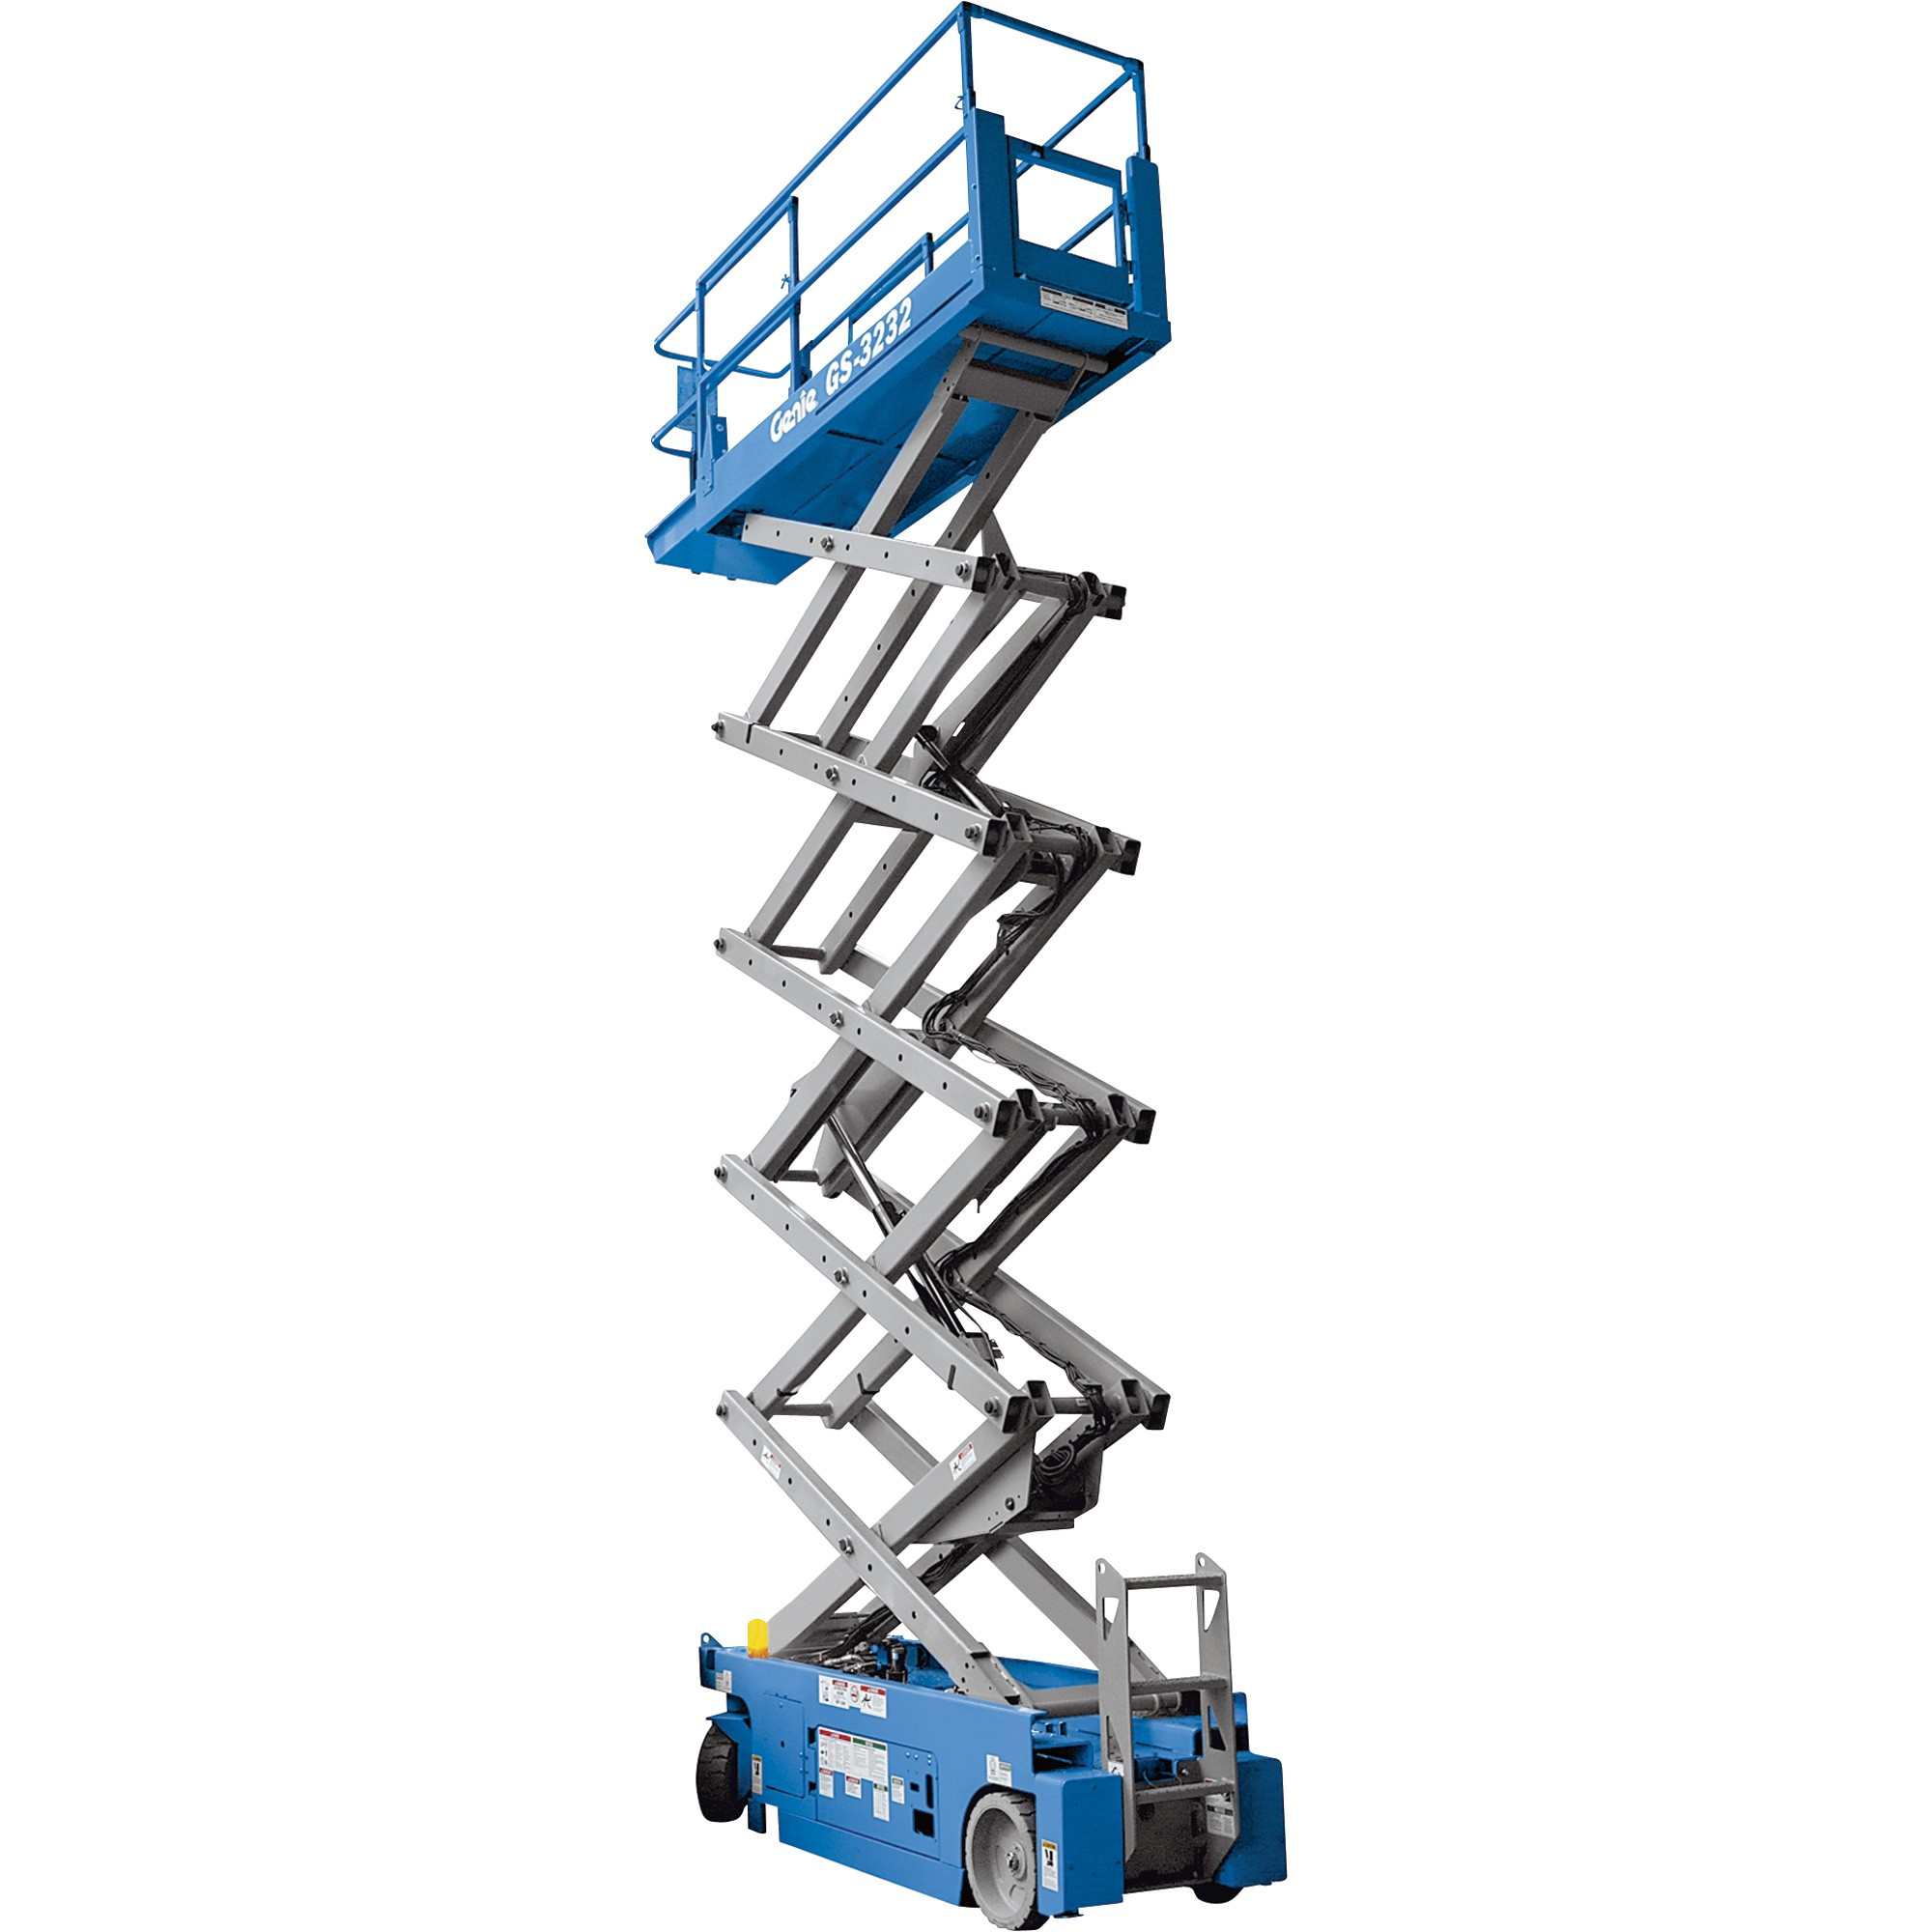 32 ft Electric Narrow Scissor Lift